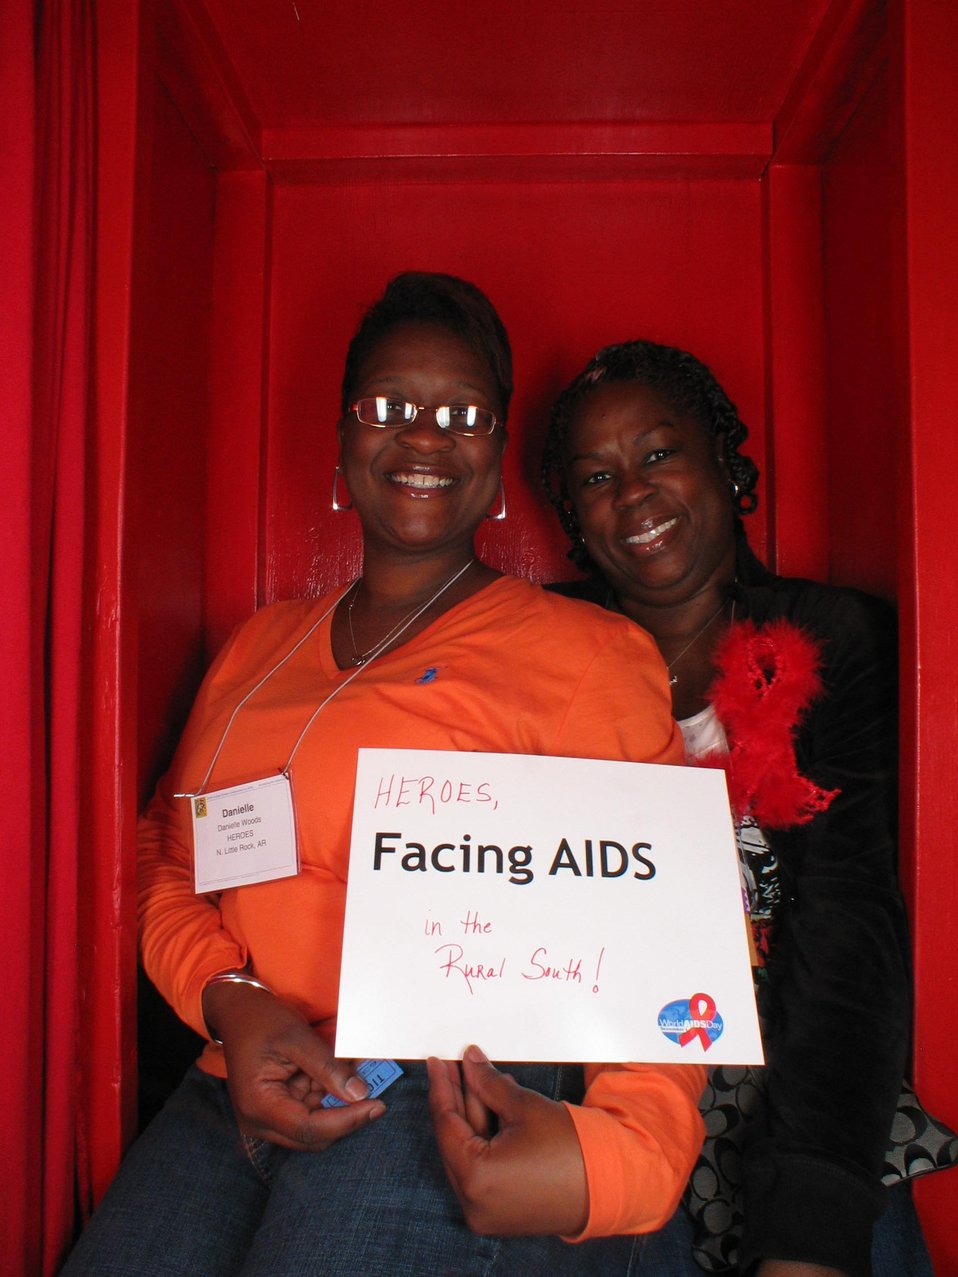 Facing AIDS in the Rural South.